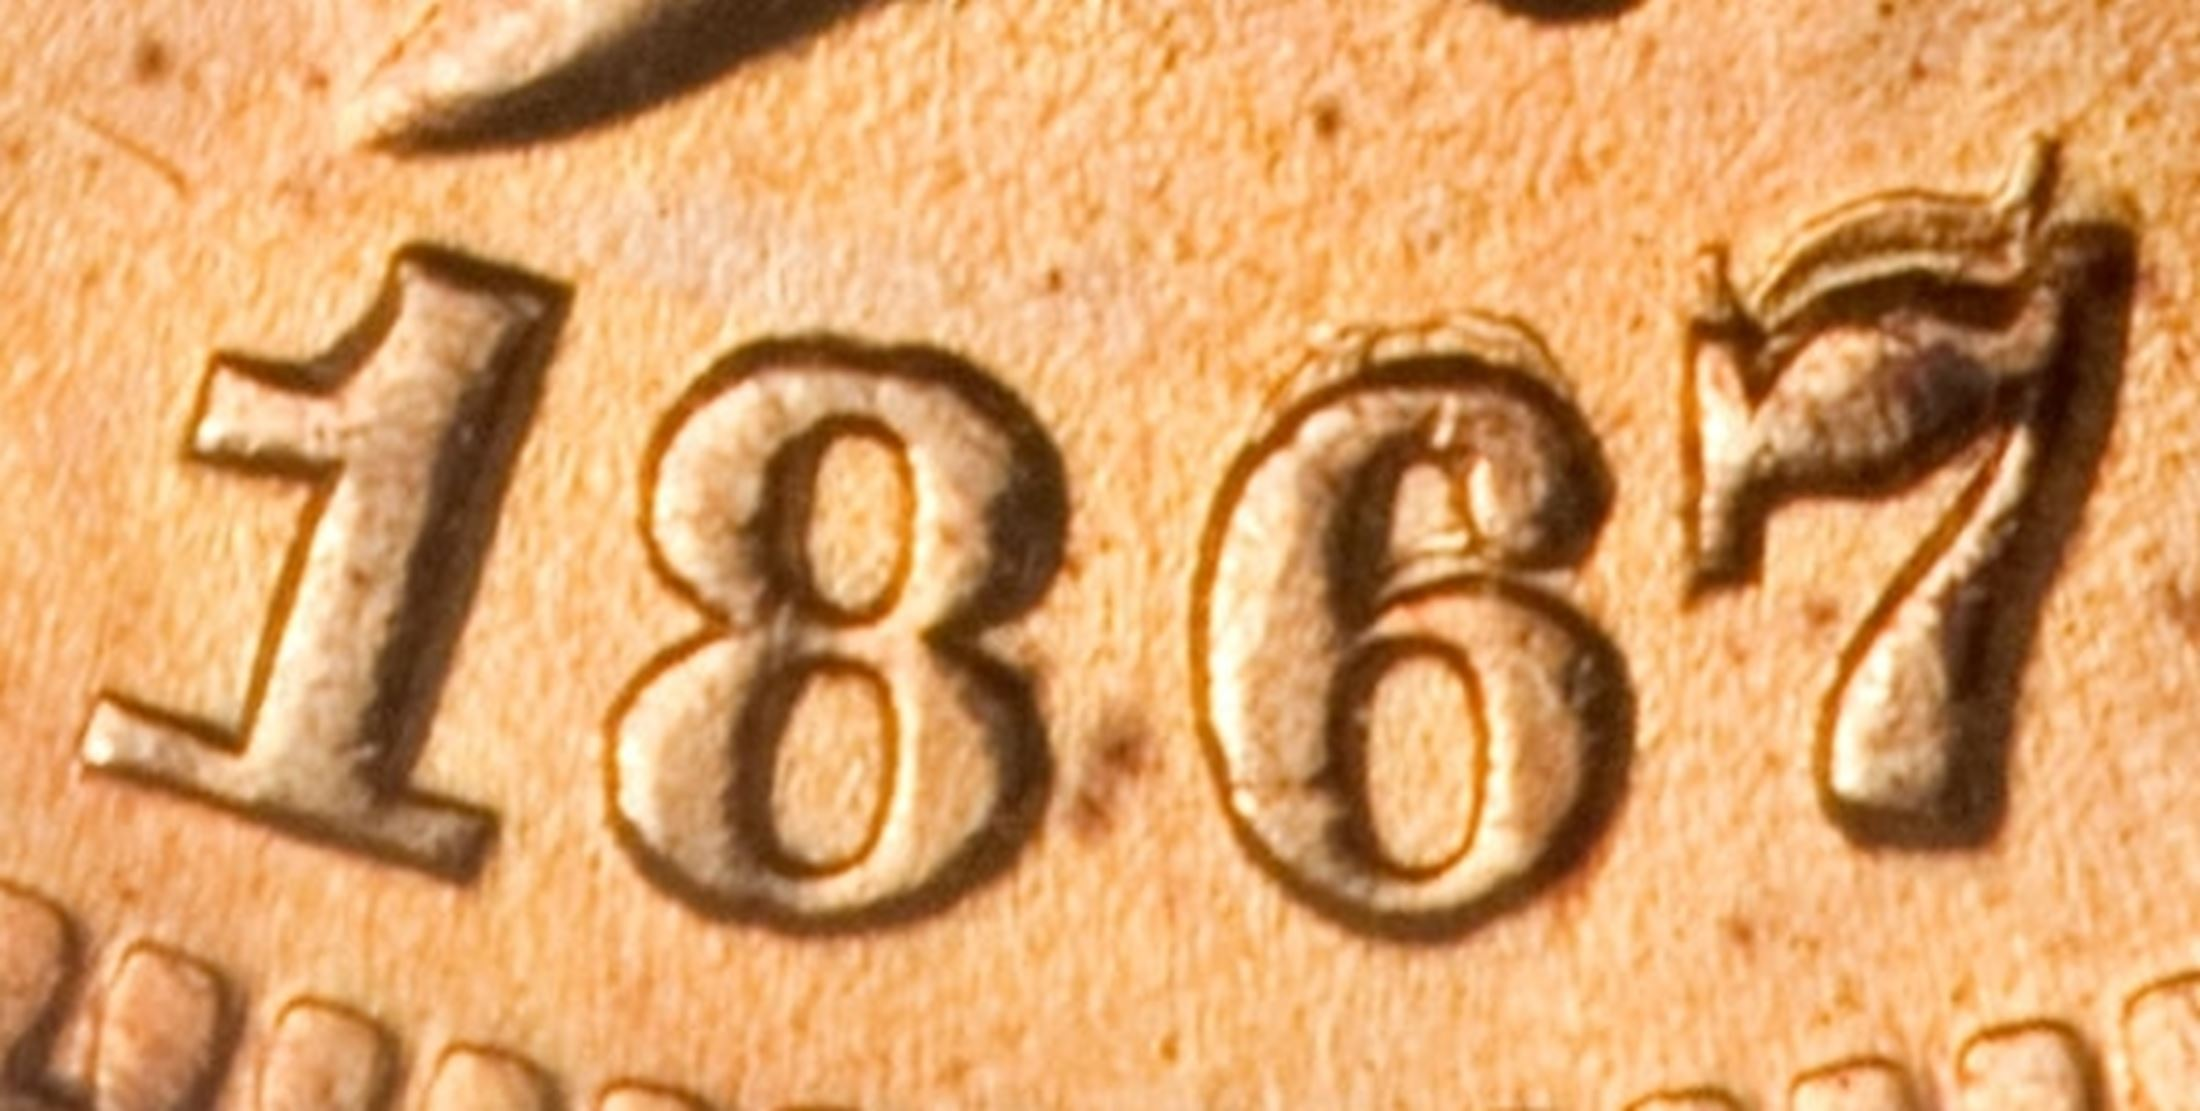 CLOSEUP OF DATE